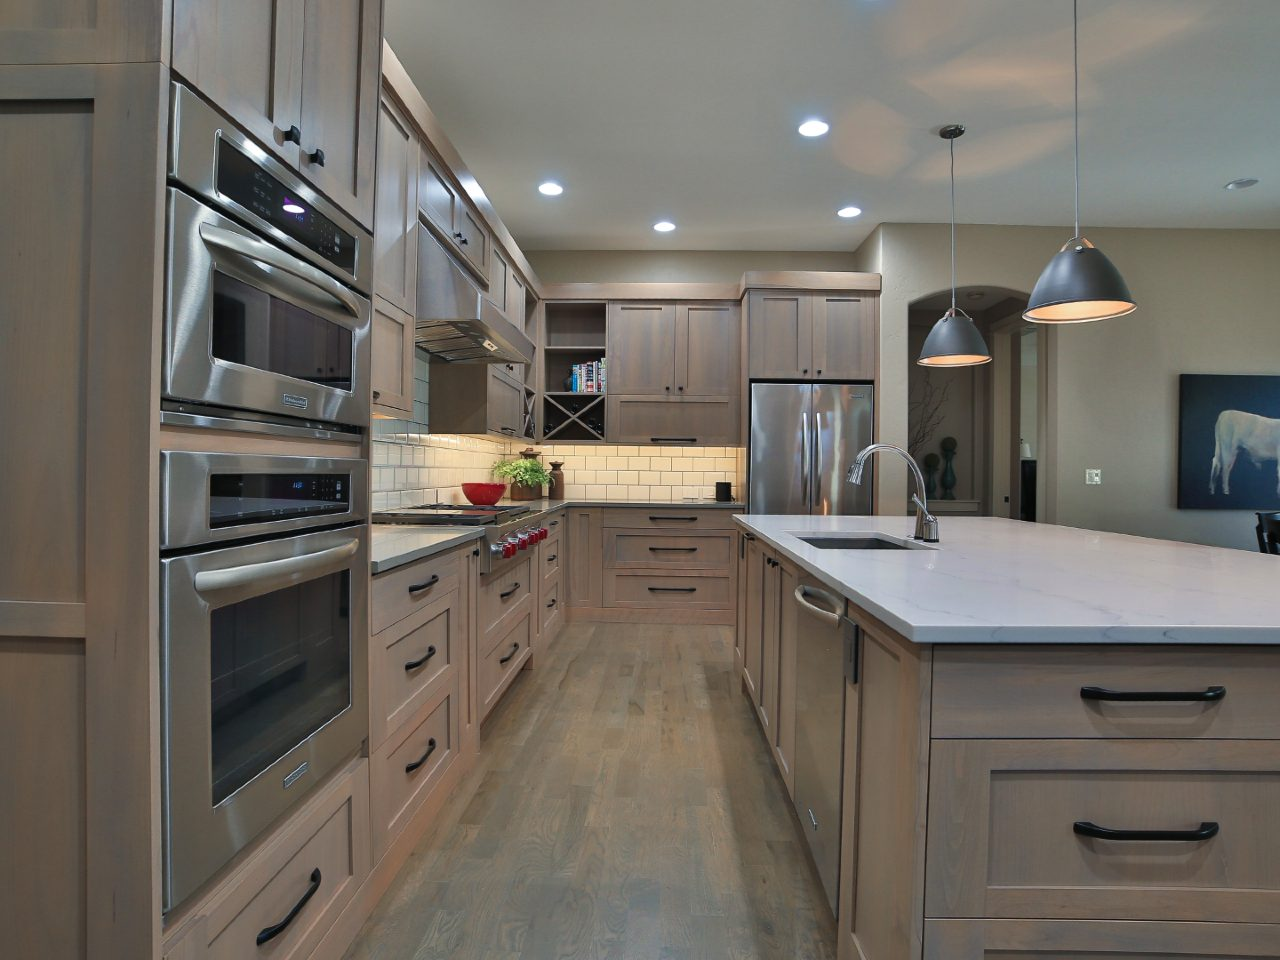 Kitchen Cabinets | Boise Remodeling Contractor